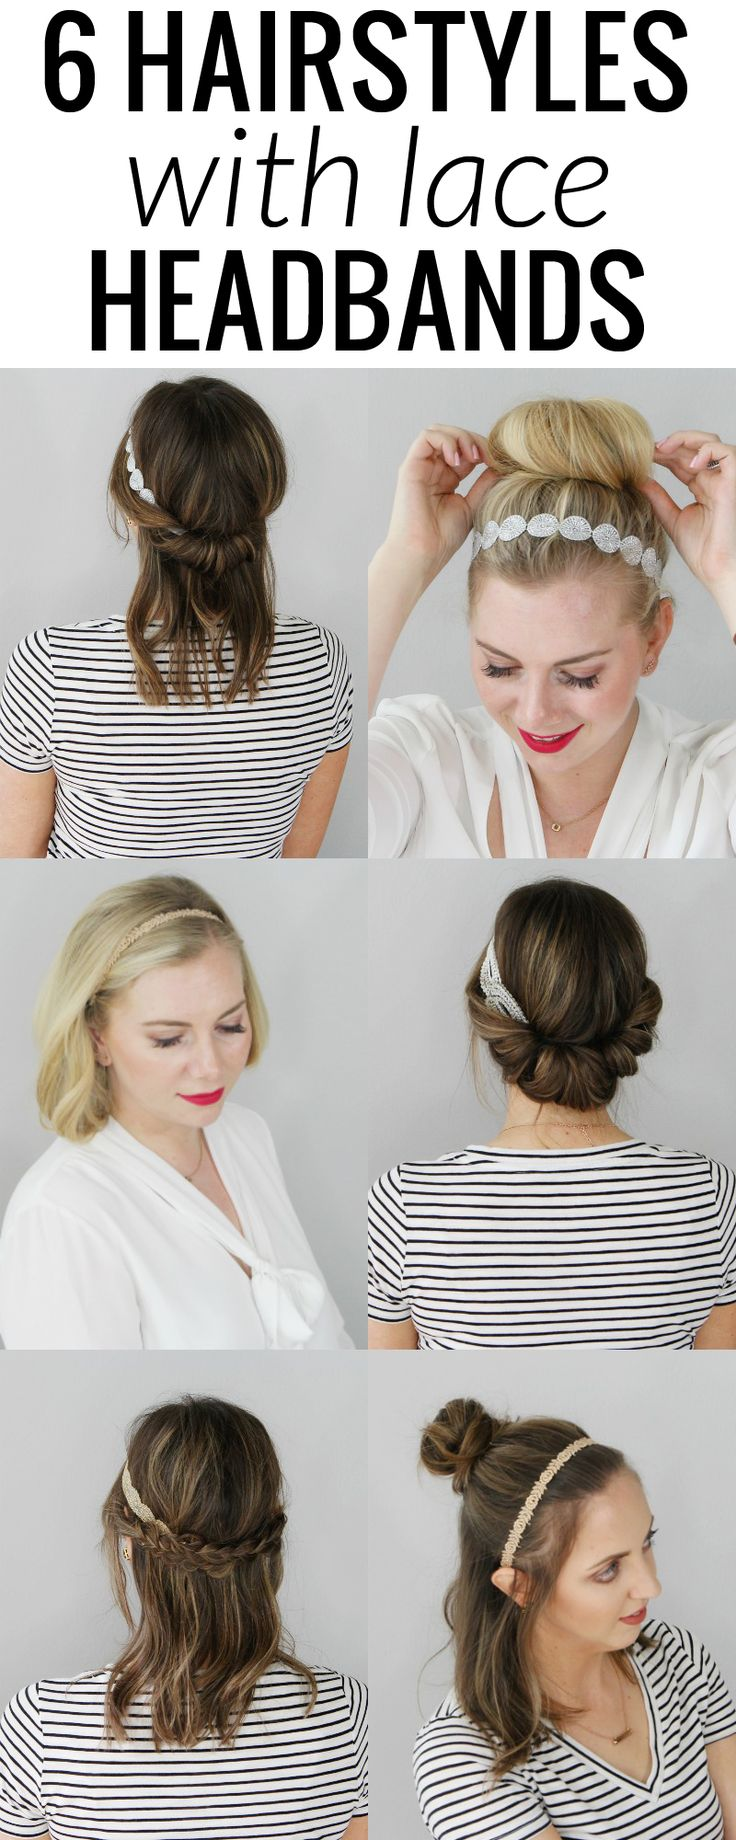 6 Hairstyles with Lace Headbands - each hairstyle is super chic and super easy to do! Click through to the 3 minute video tutorial!